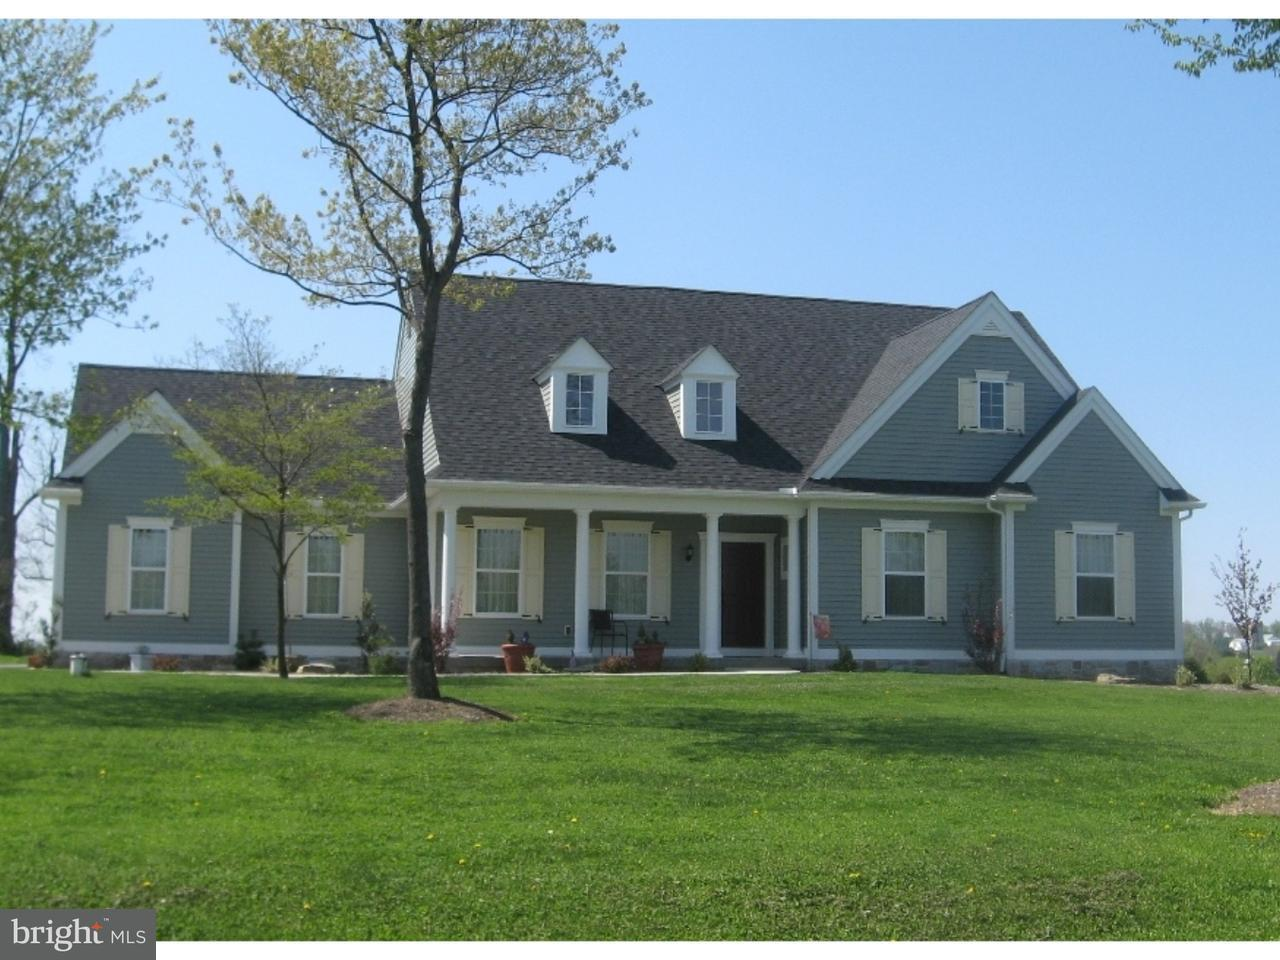 Single Family Home for Sale at GREEN Lane Quarryville, Pennsylvania 17566 United States